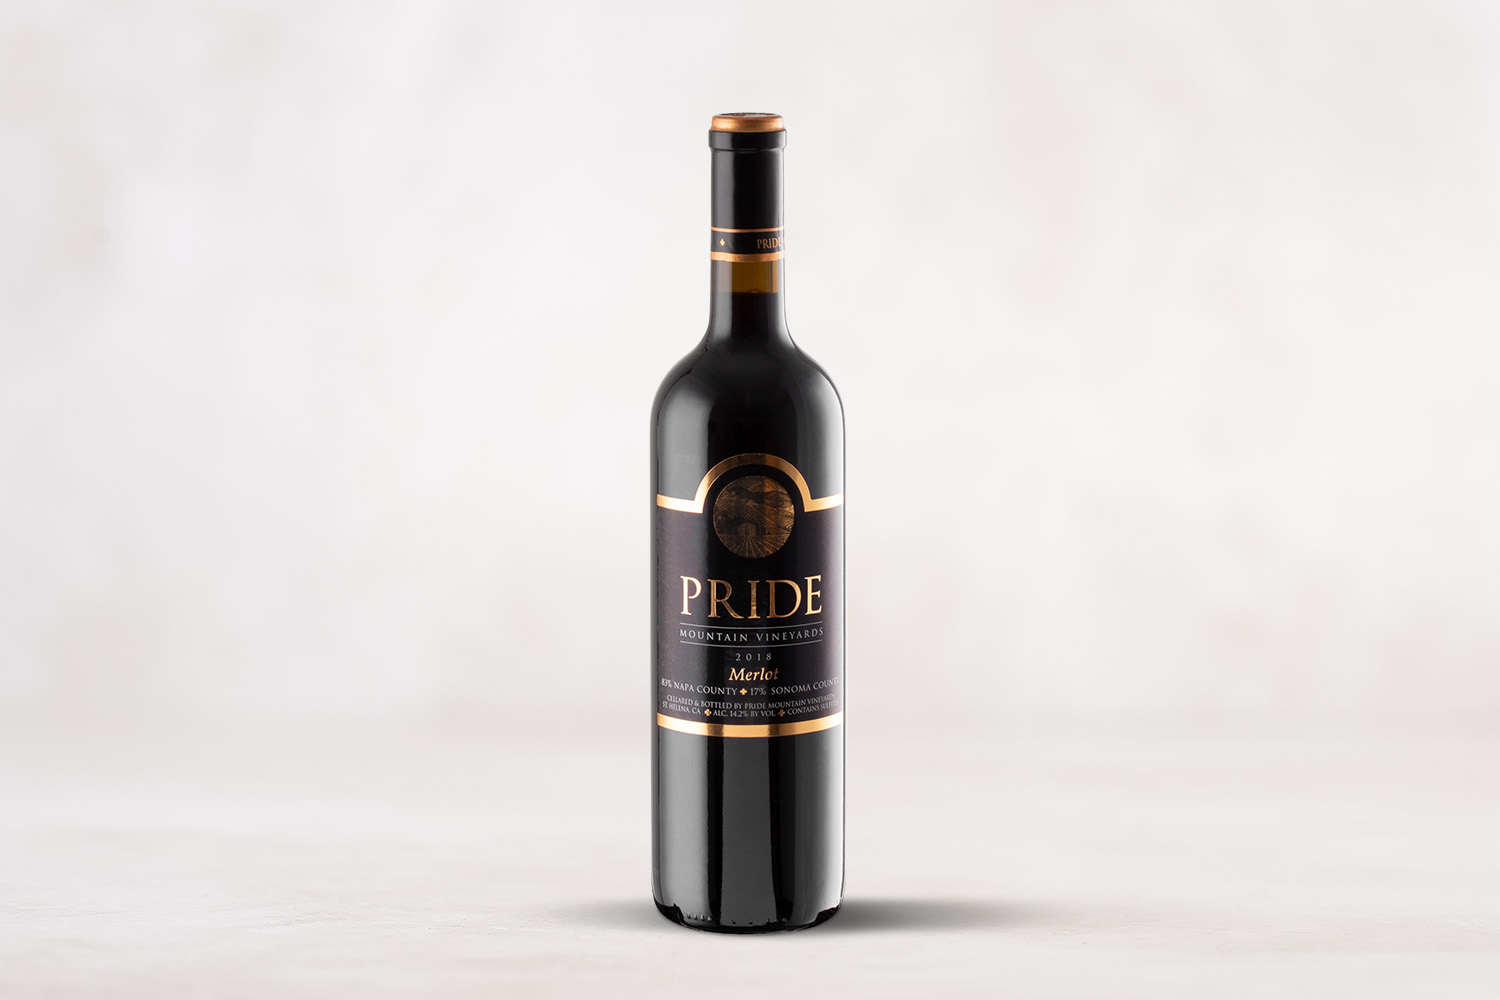 Pride Mountain Vineyards, Merlot Napa Valley, California 2018 - SommSelect